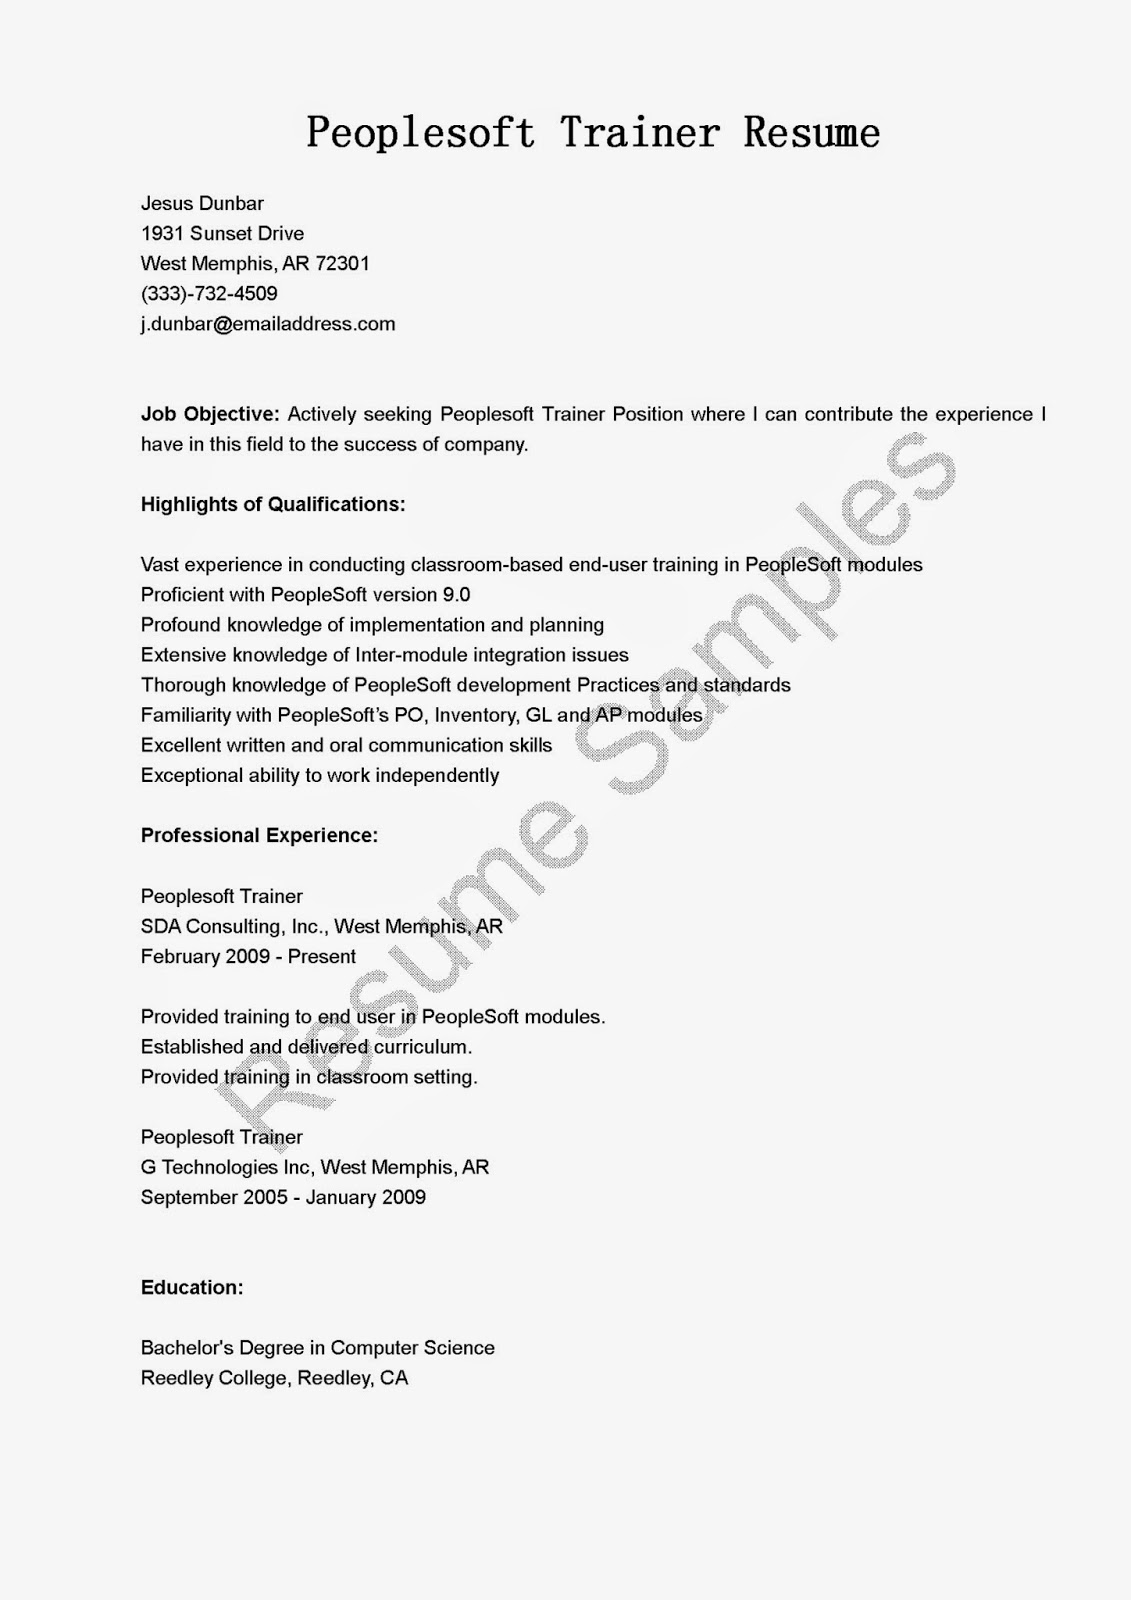 Peoplesoft technical sample resume